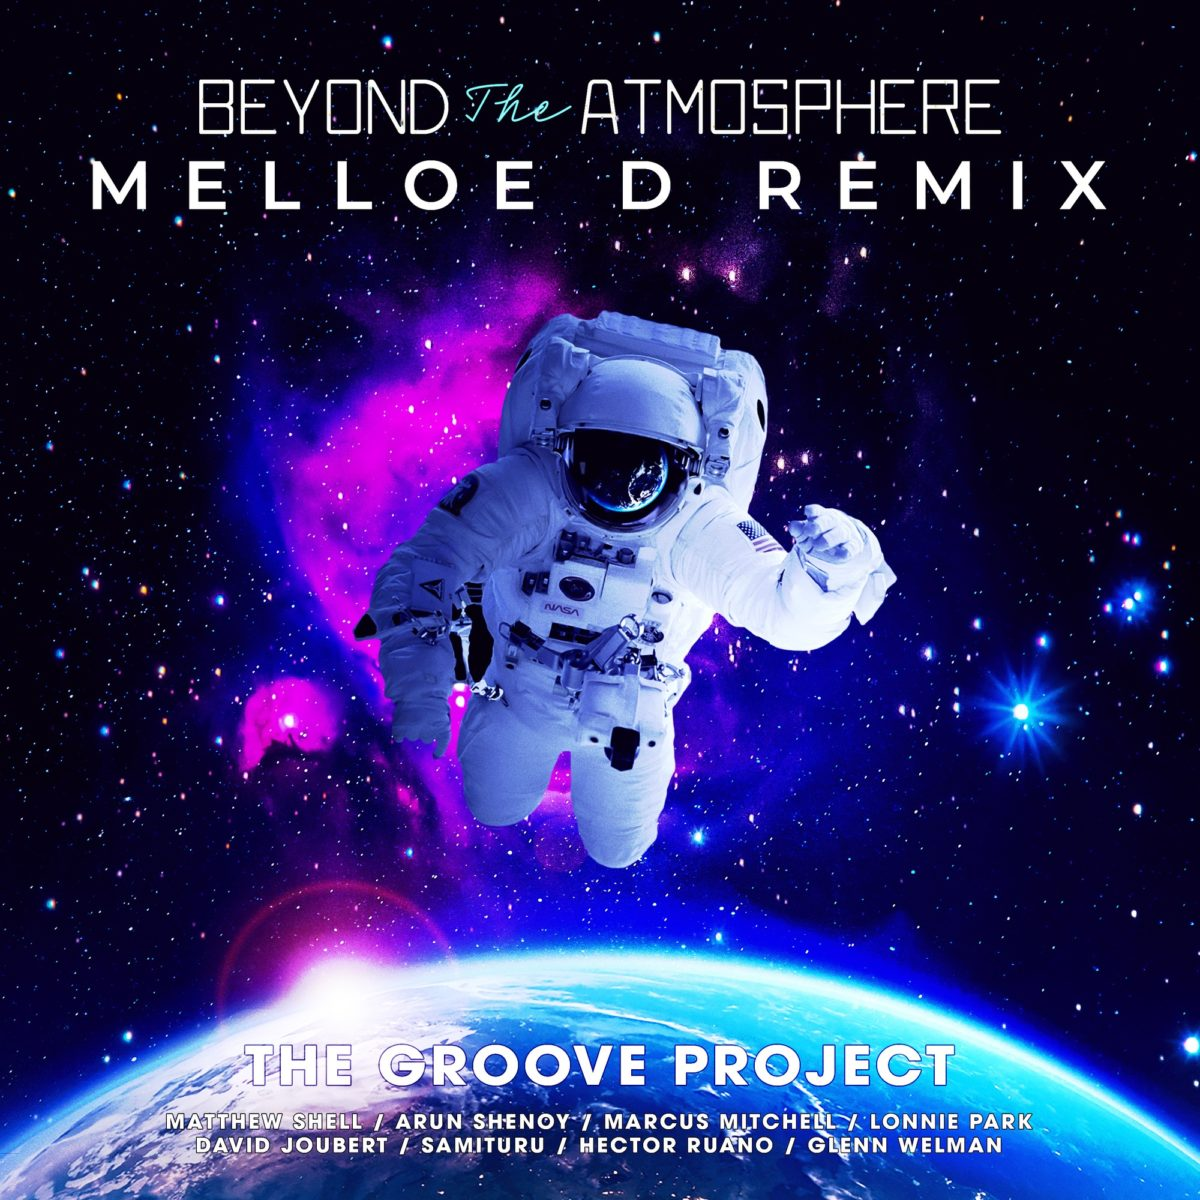 Beyond the Atmosphere - Cover Art Remix 2000px